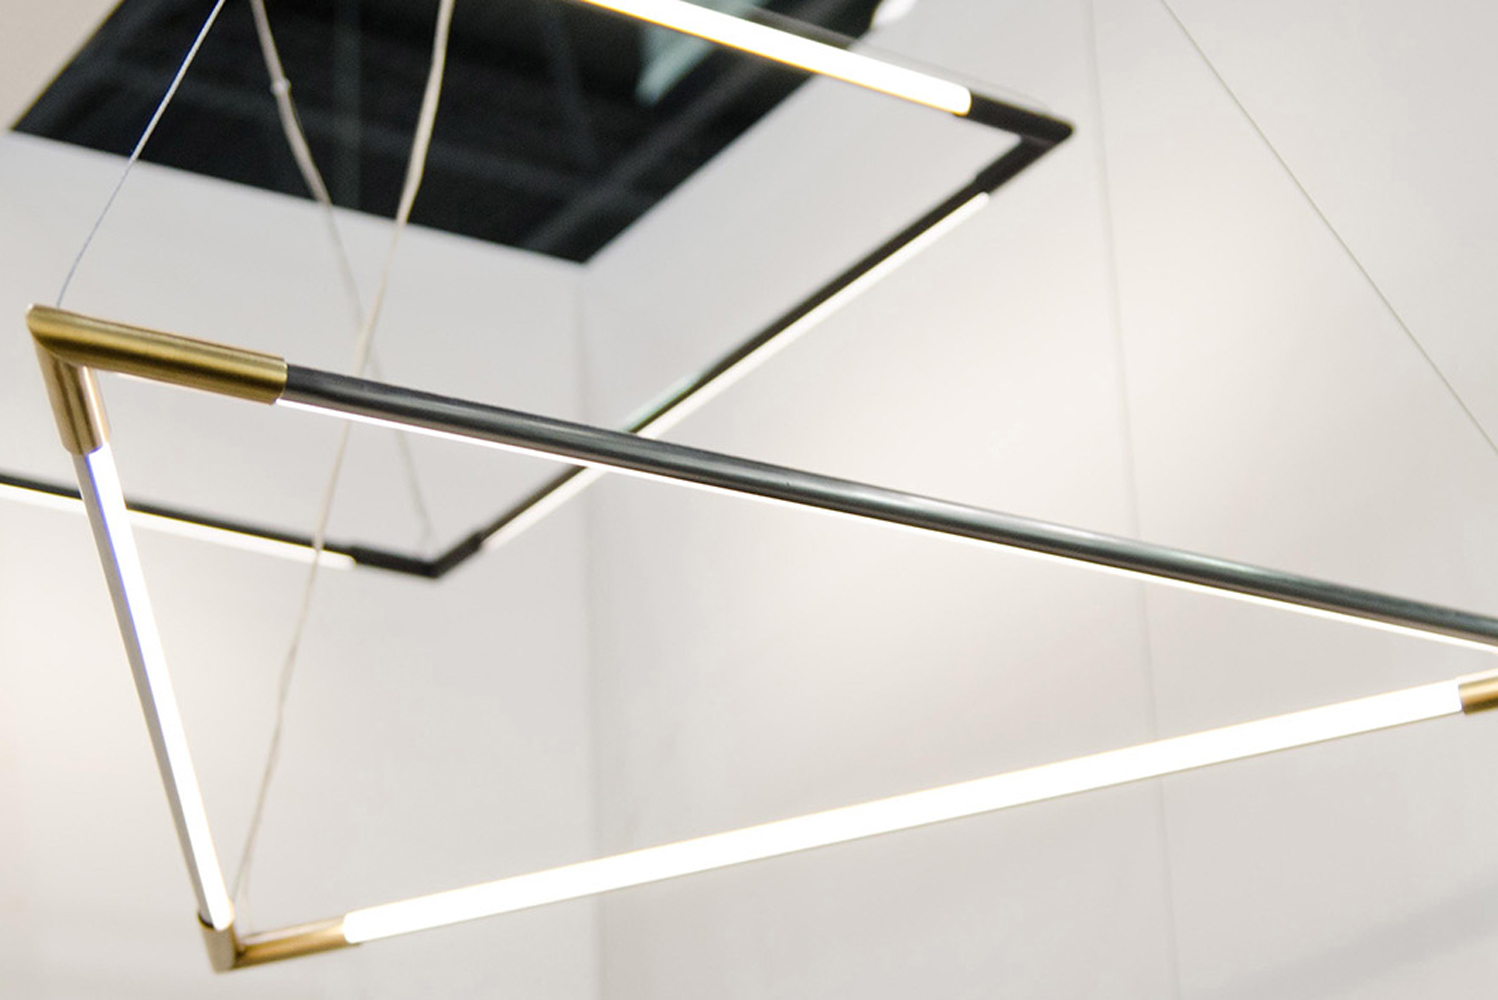 Four geometric interpretations are designed with interchangeable elements for a custom lighting solution.